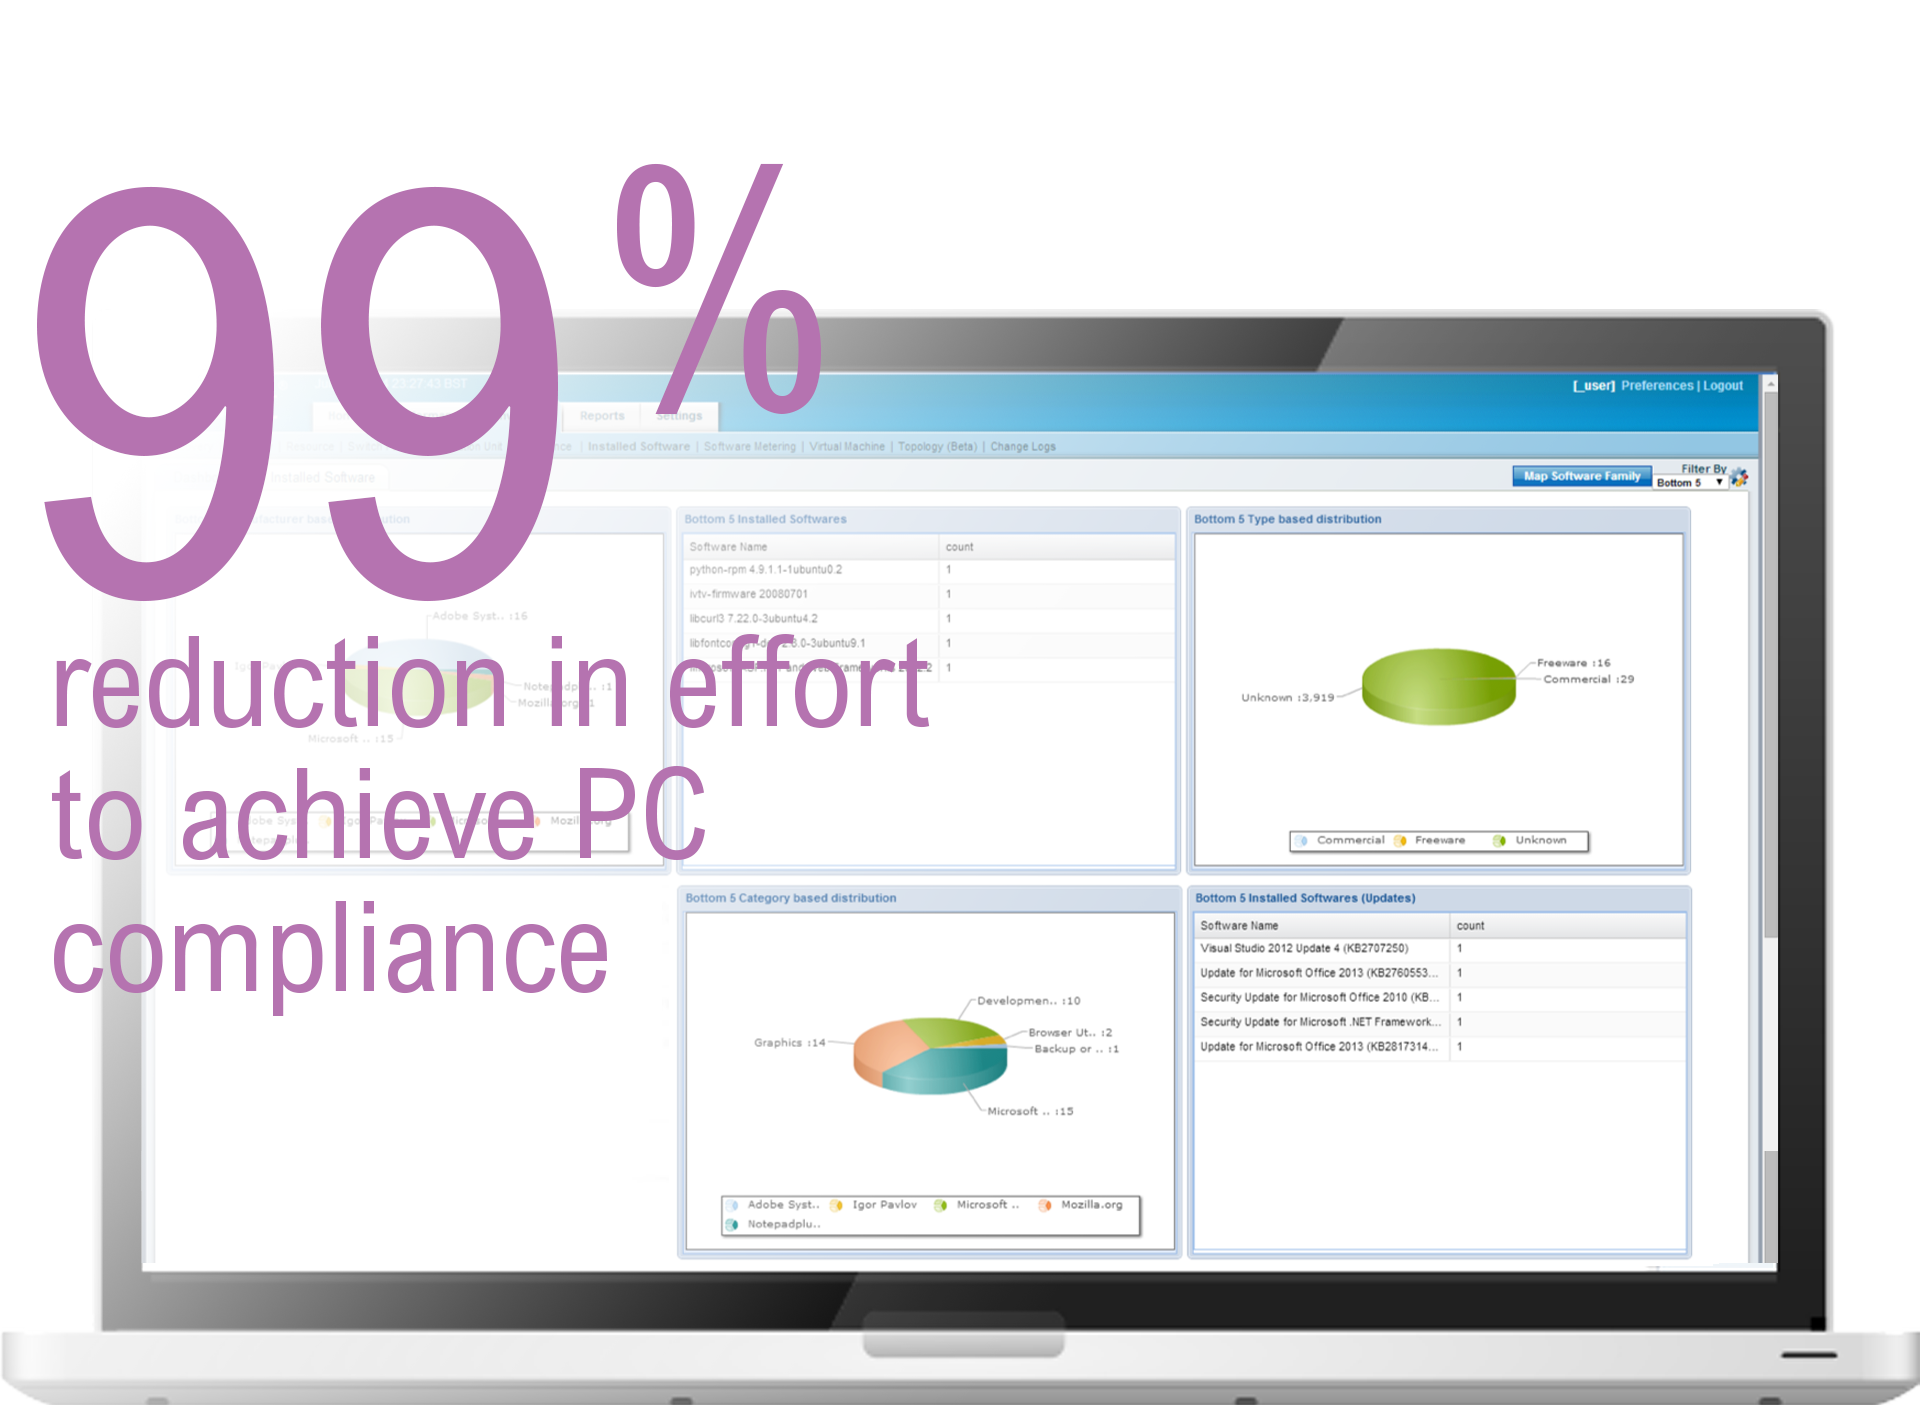 99% reduction in effort to achieve PC compliance